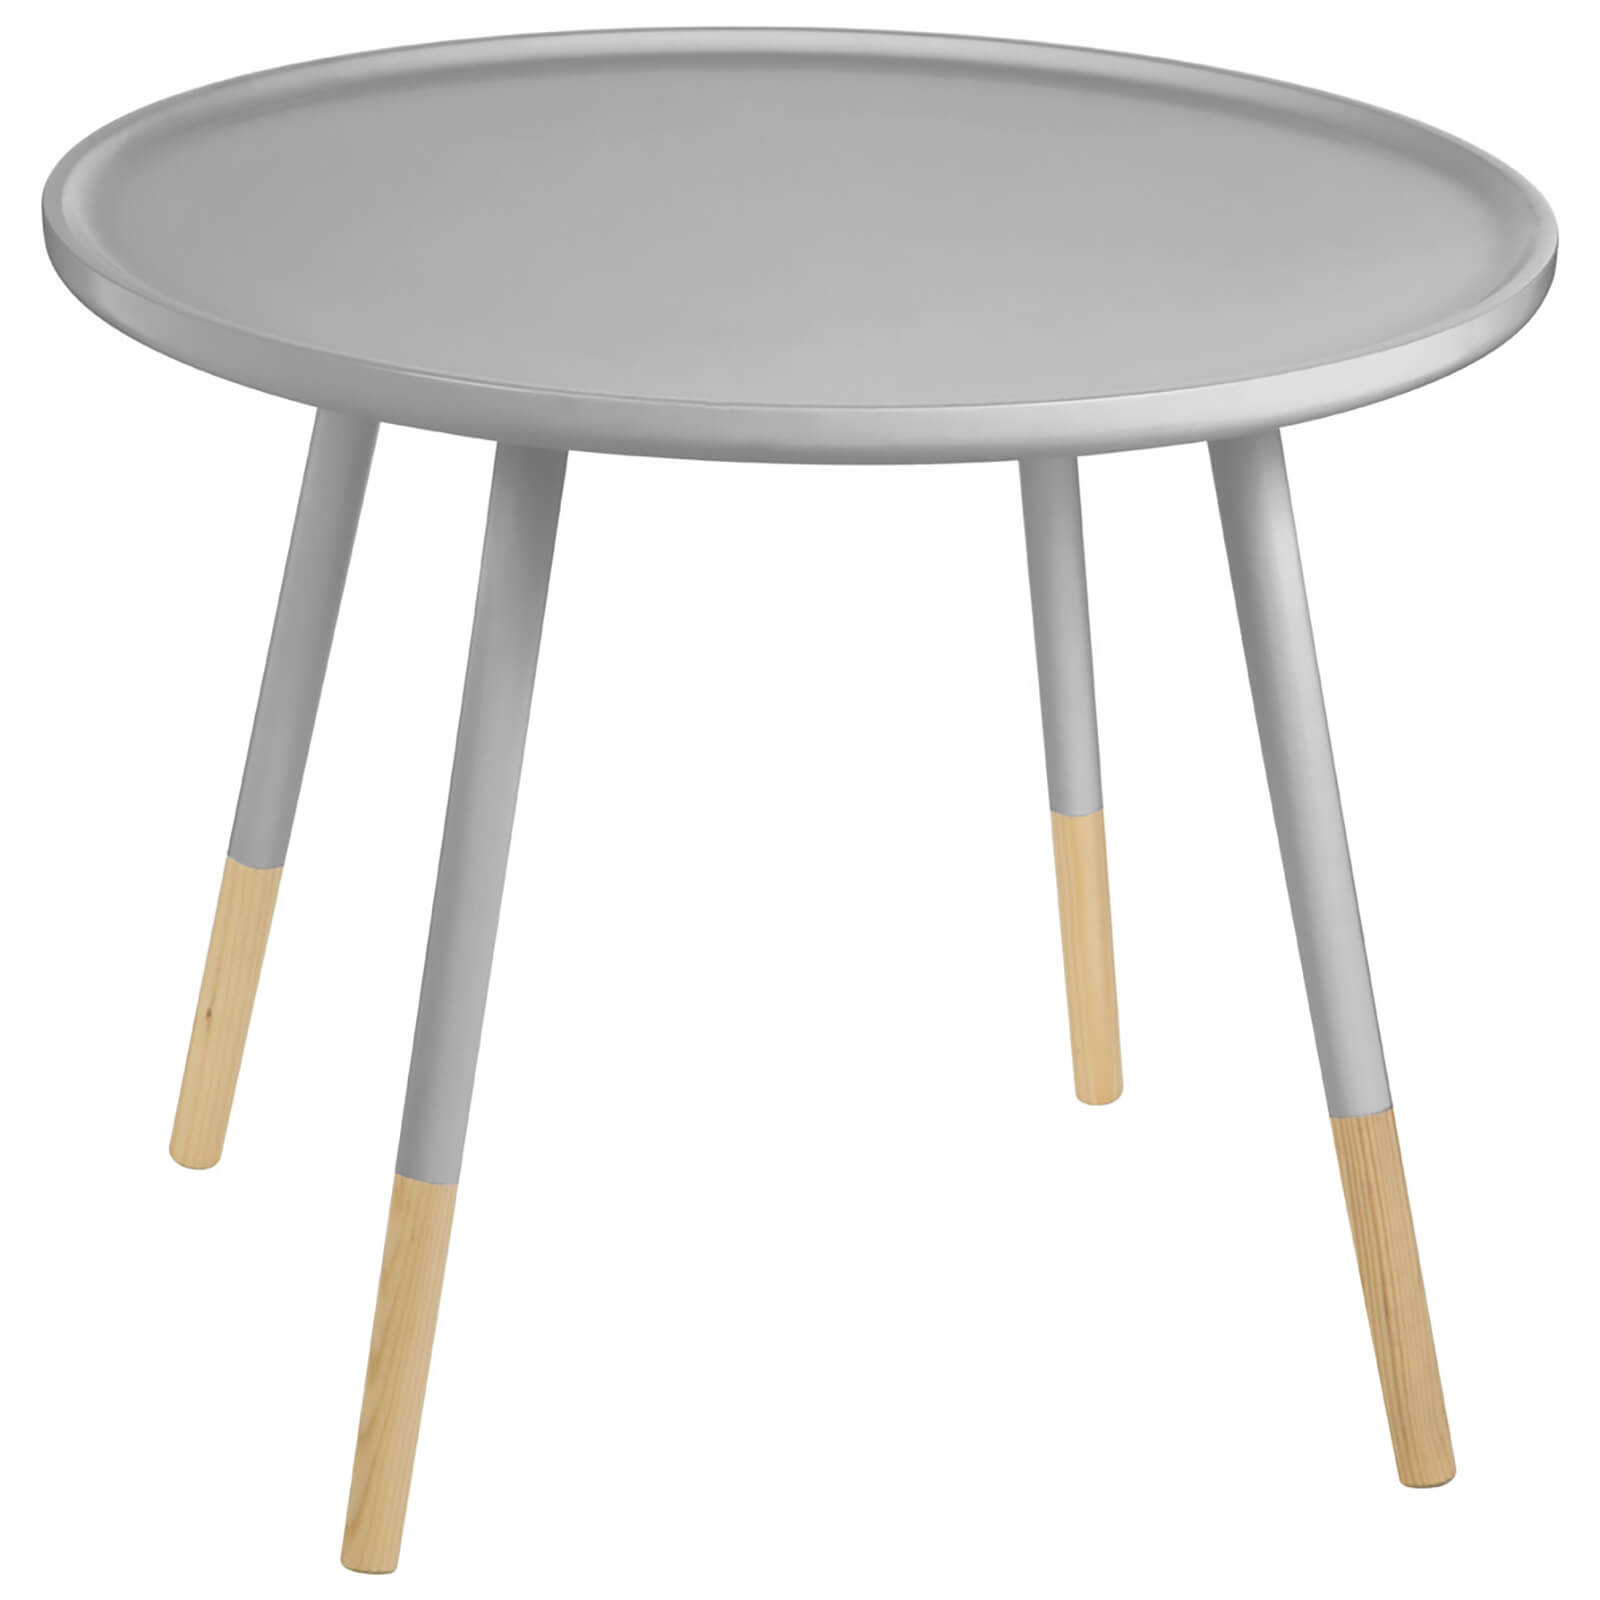 Fifty Five South Viborg Round Side Table - Grey